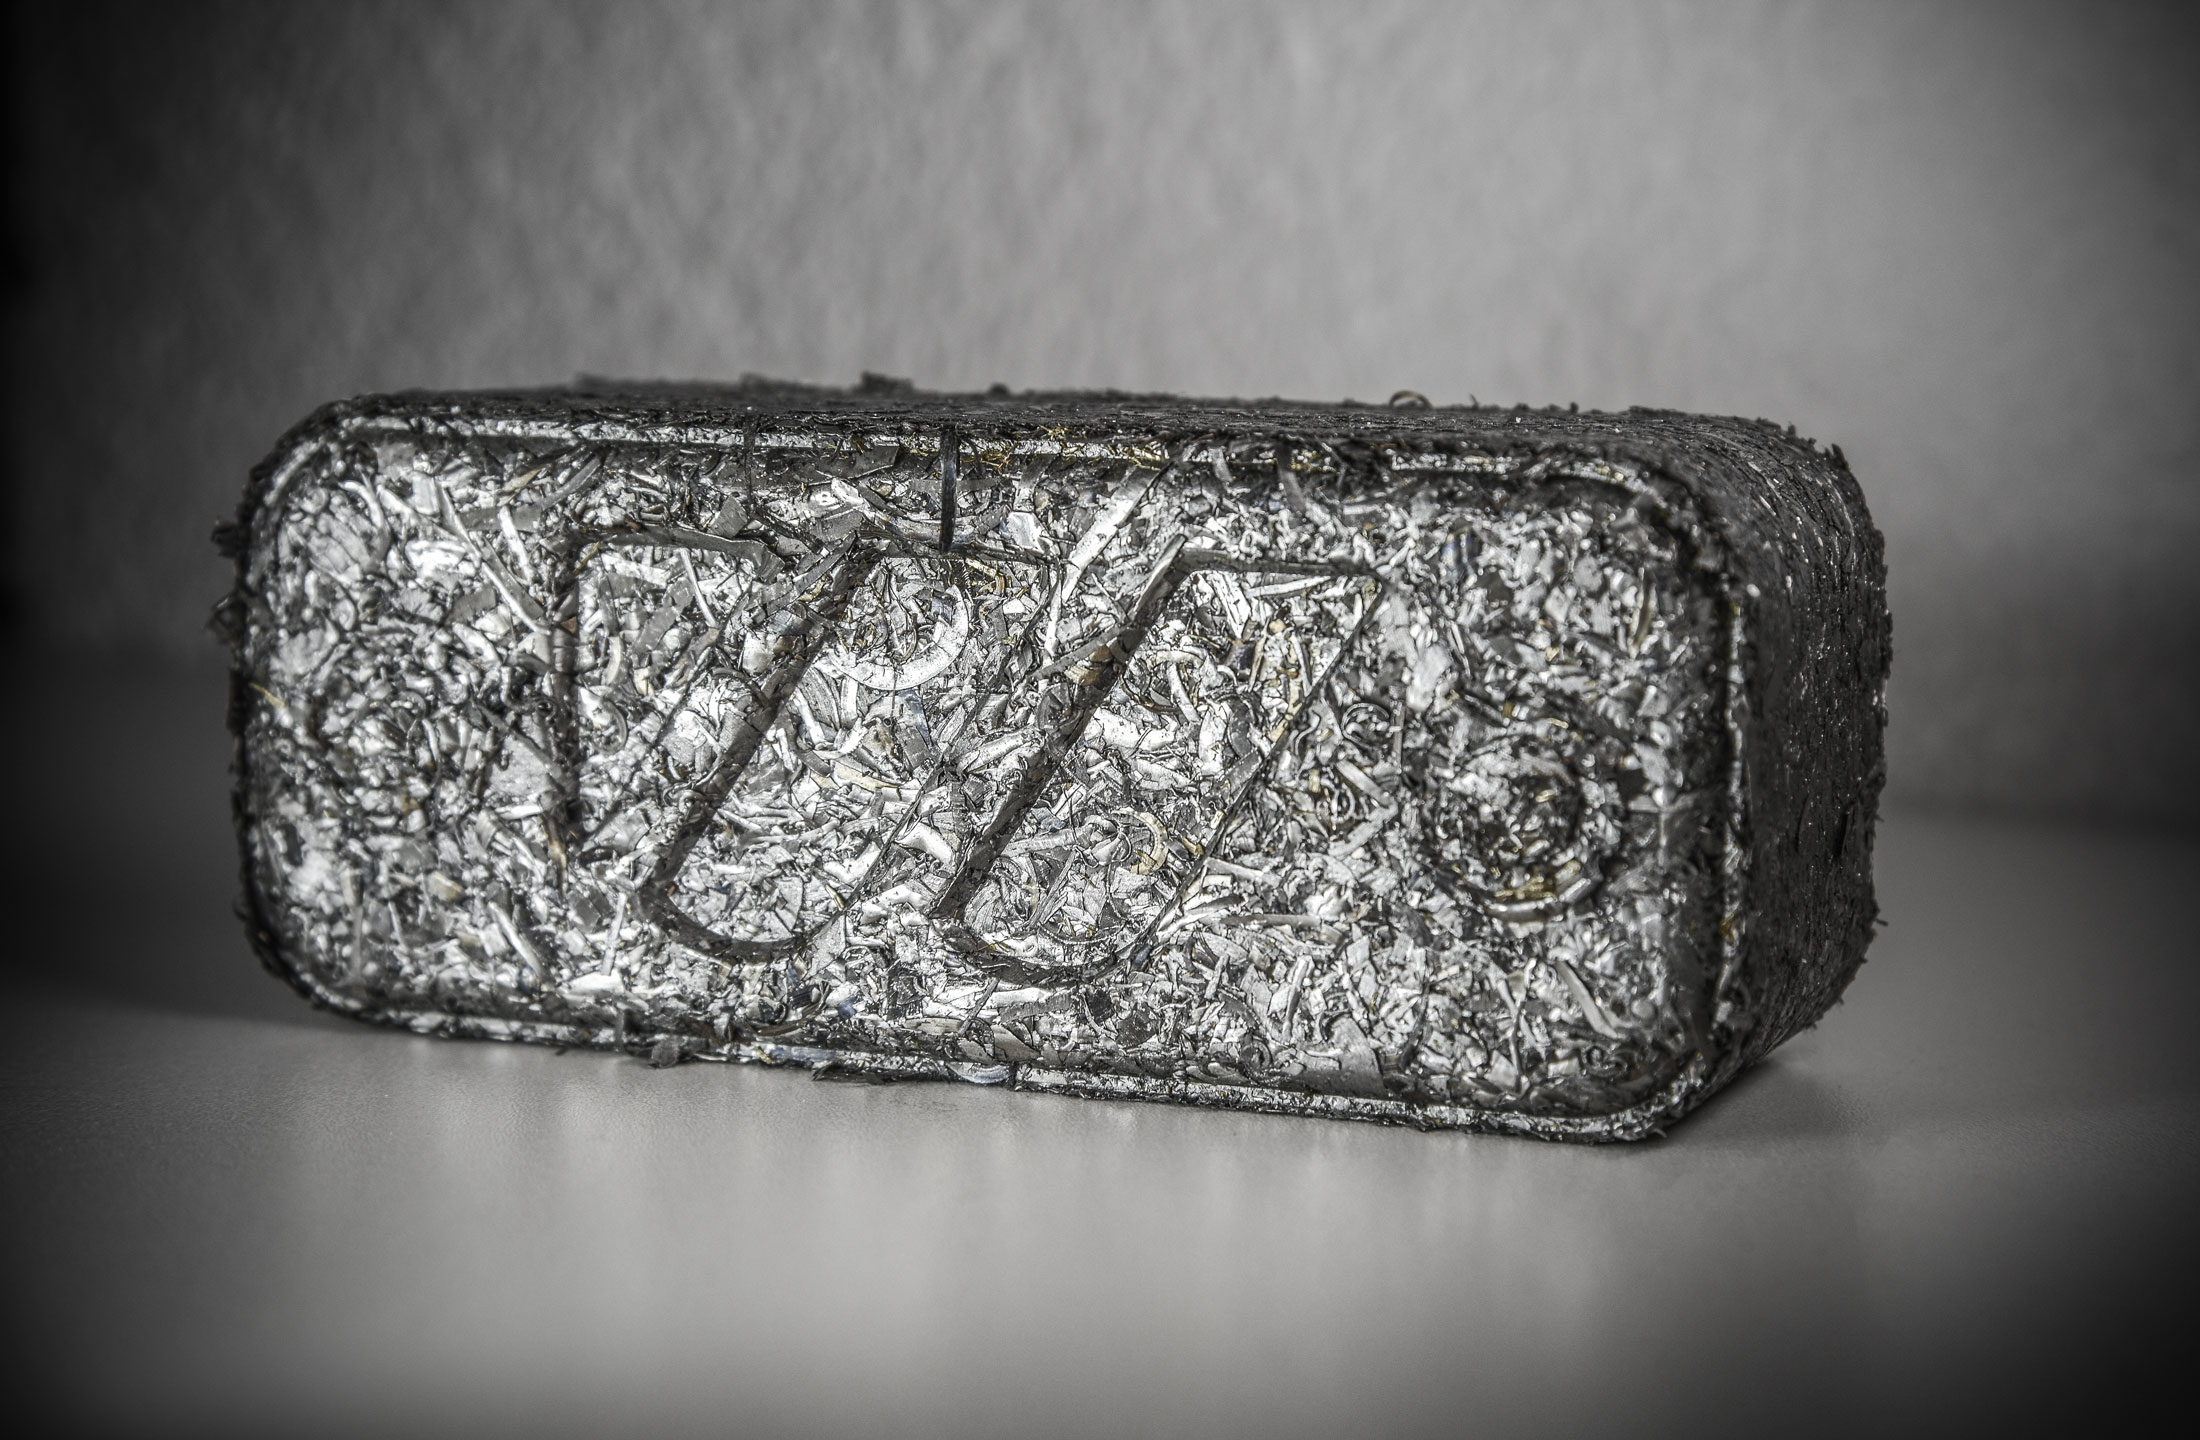 Rectangular briquette from steel chips